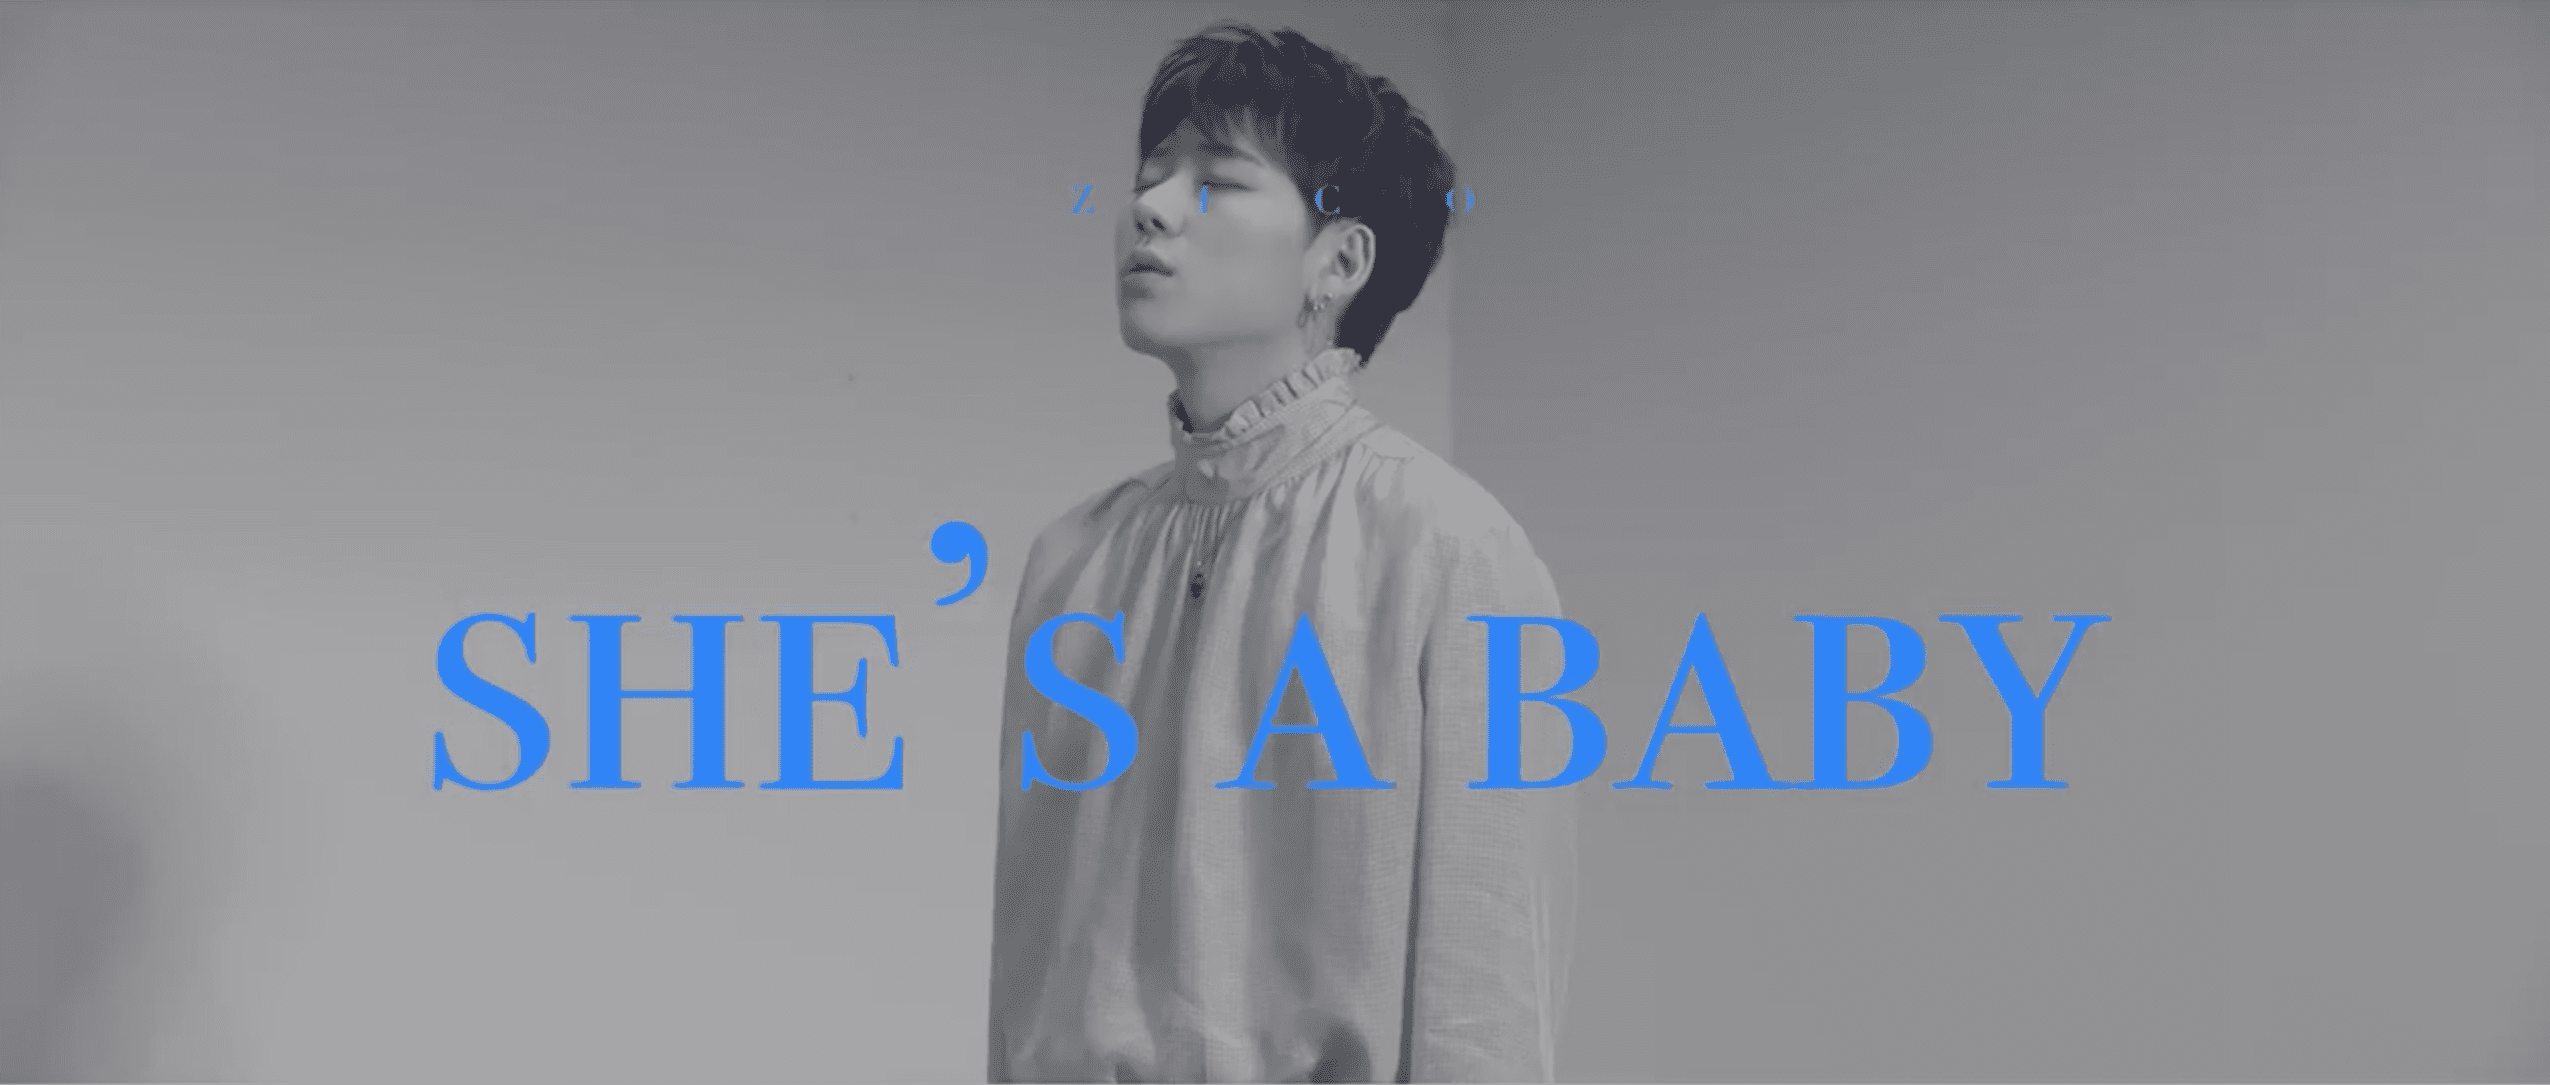 """WATCH: Zico Releases First Teaser For Official MV """"SHE'S A BABY"""""""